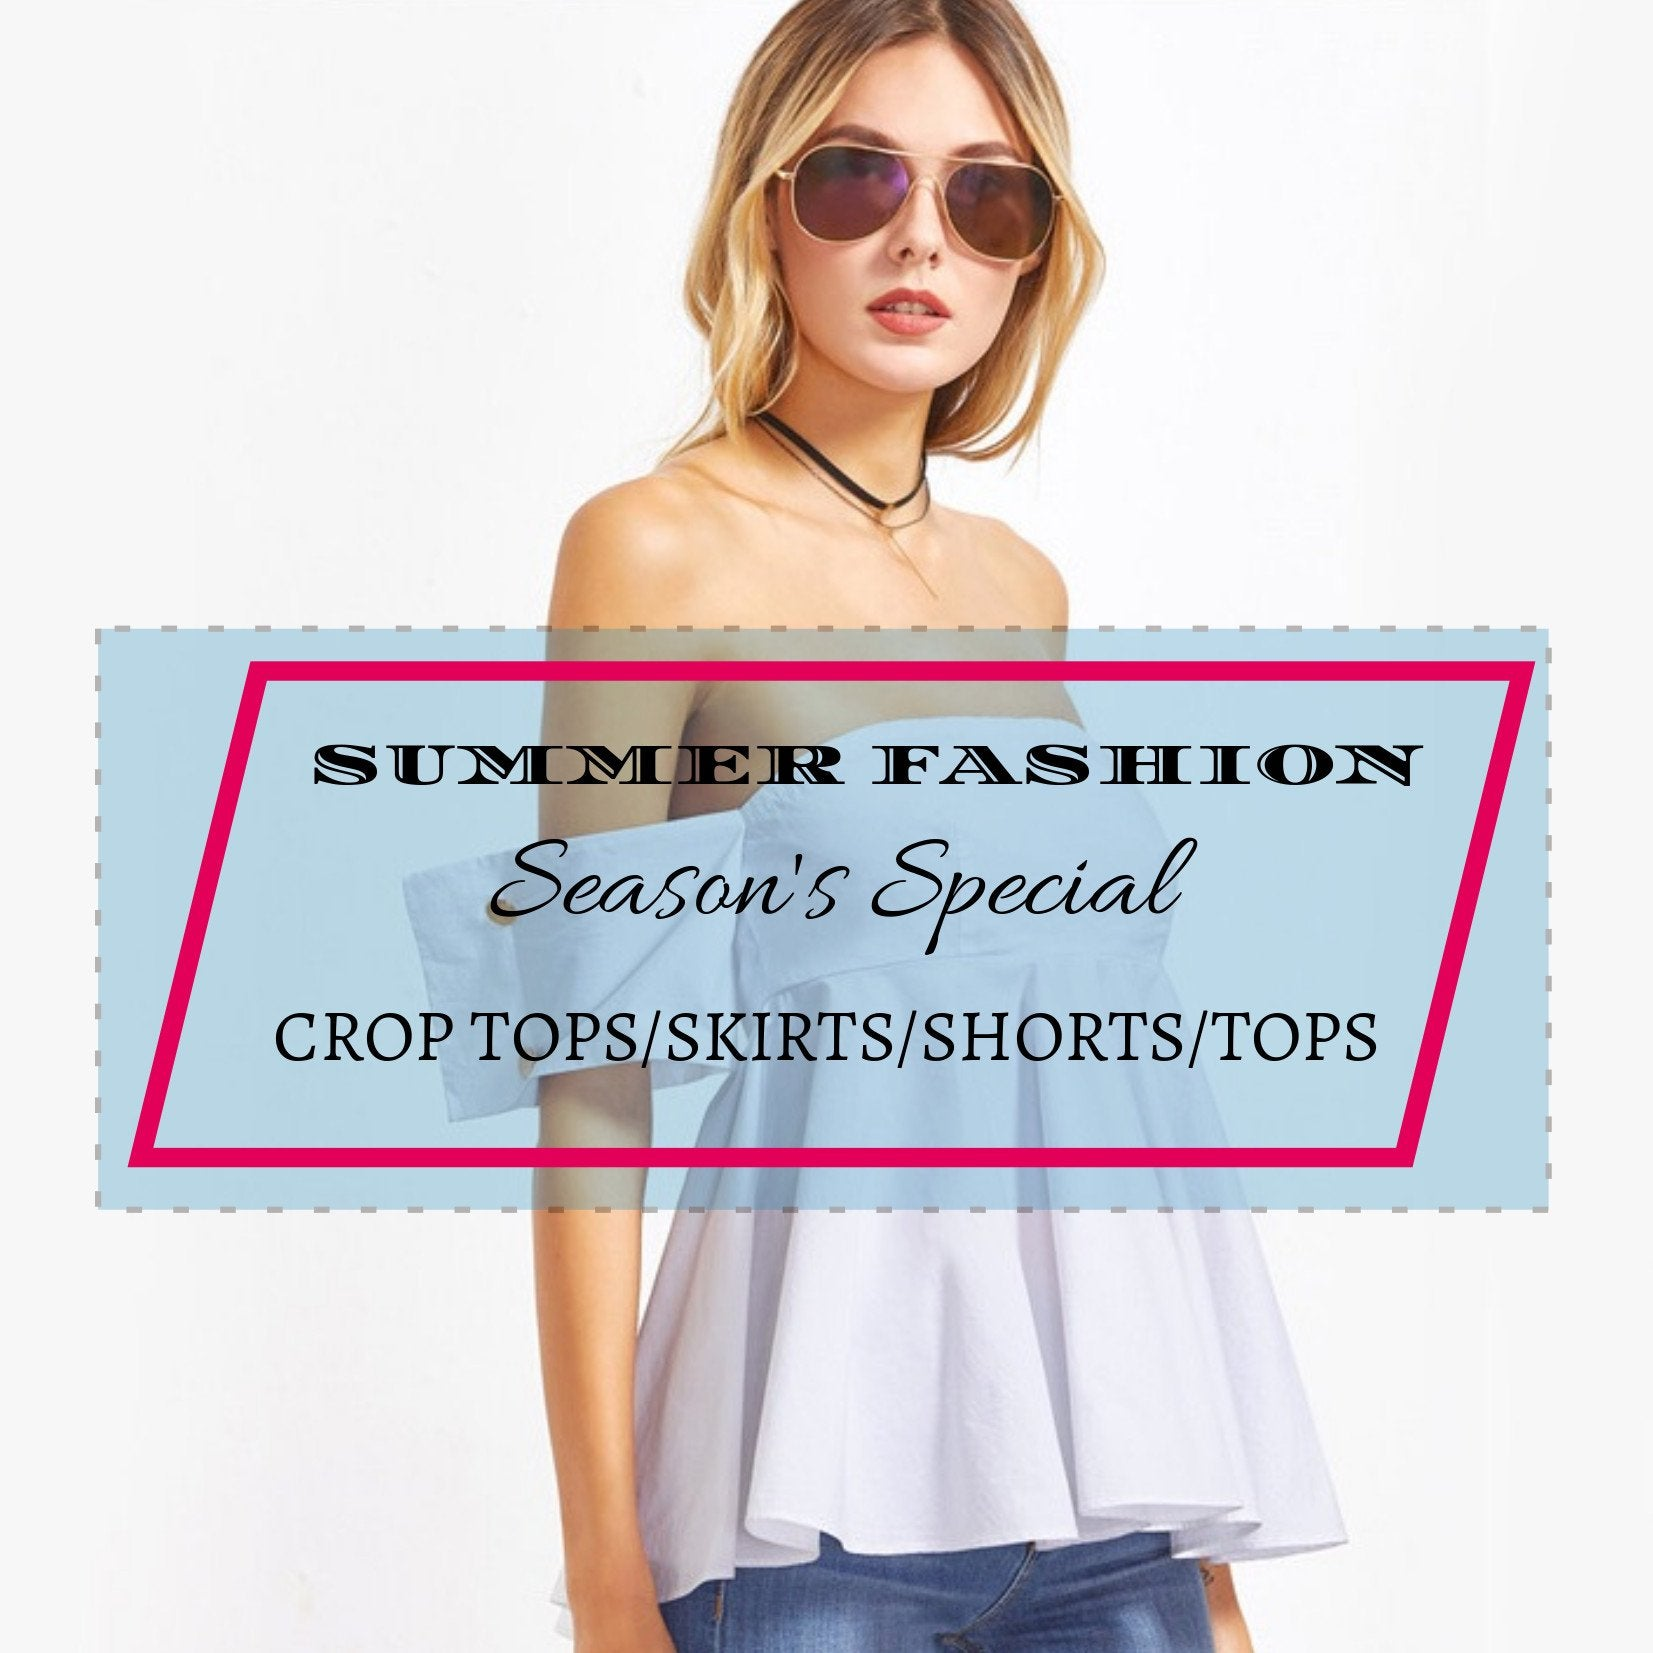 Summer Fashion: Woman's Clothing